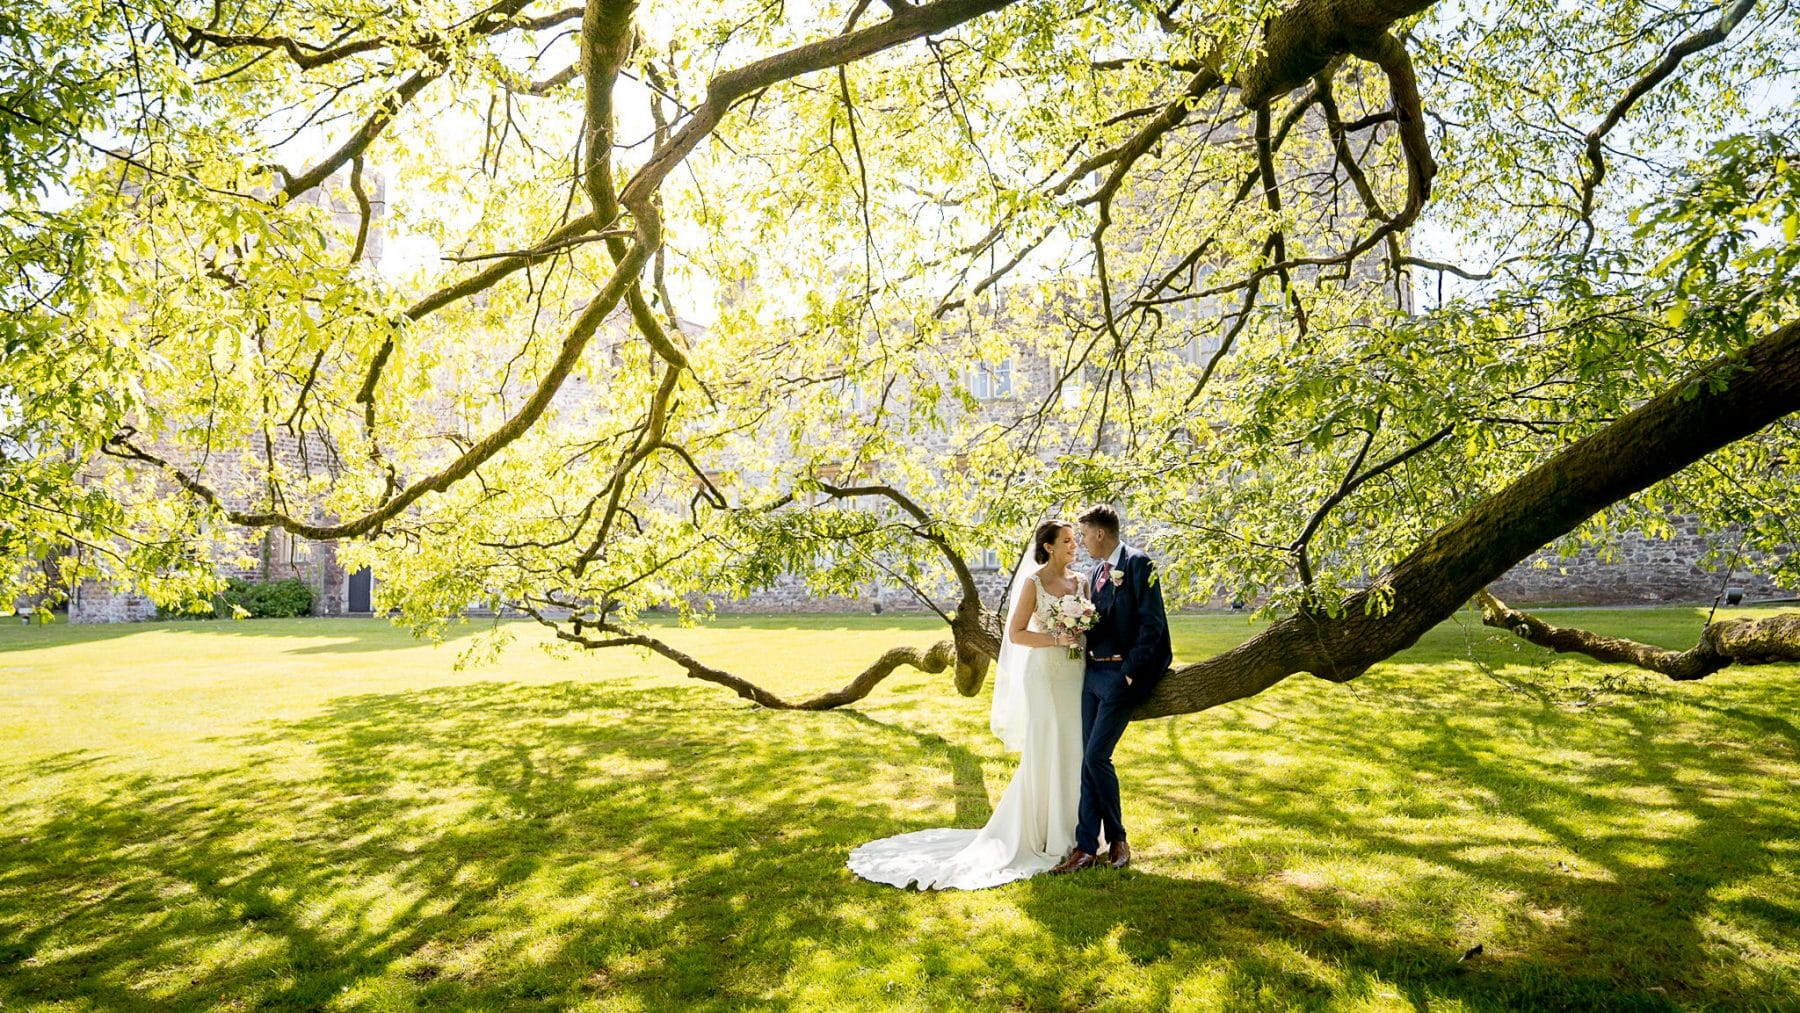 Hensol Castle wedding photography in South Wales of bride and groom kissing under a tree